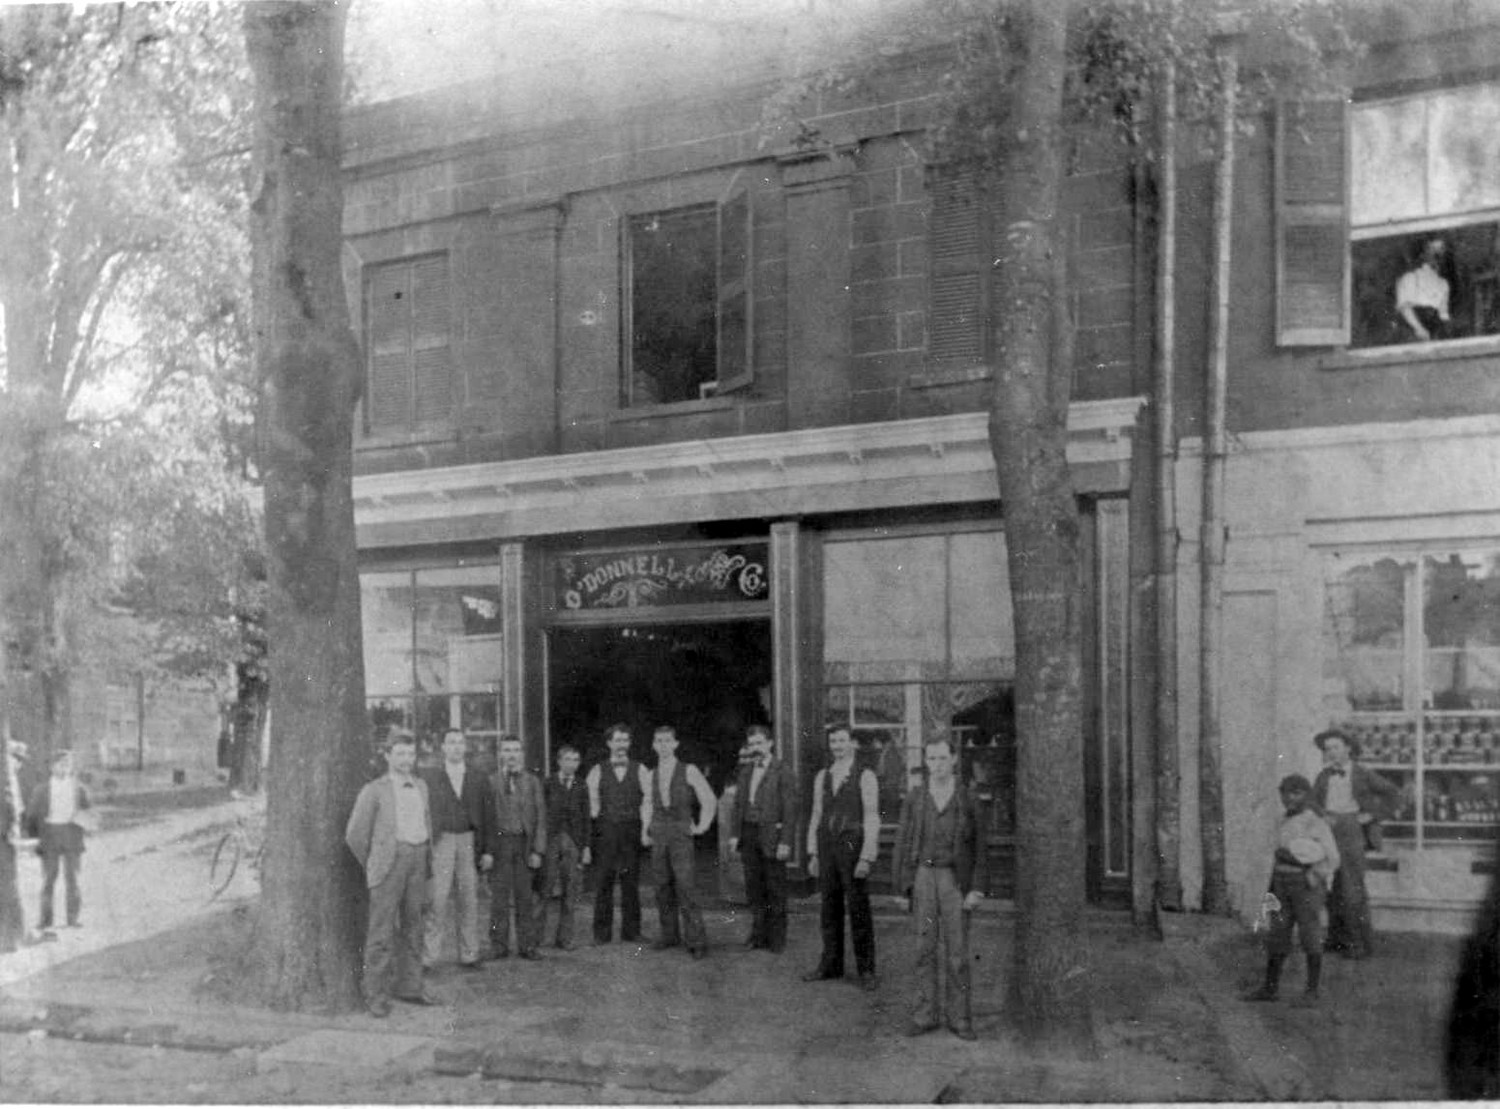 O'Donnell and Co. sold mostly groceries but also general merchandise. The owner, Neill O'Donnell, was an alderman in Sumter.